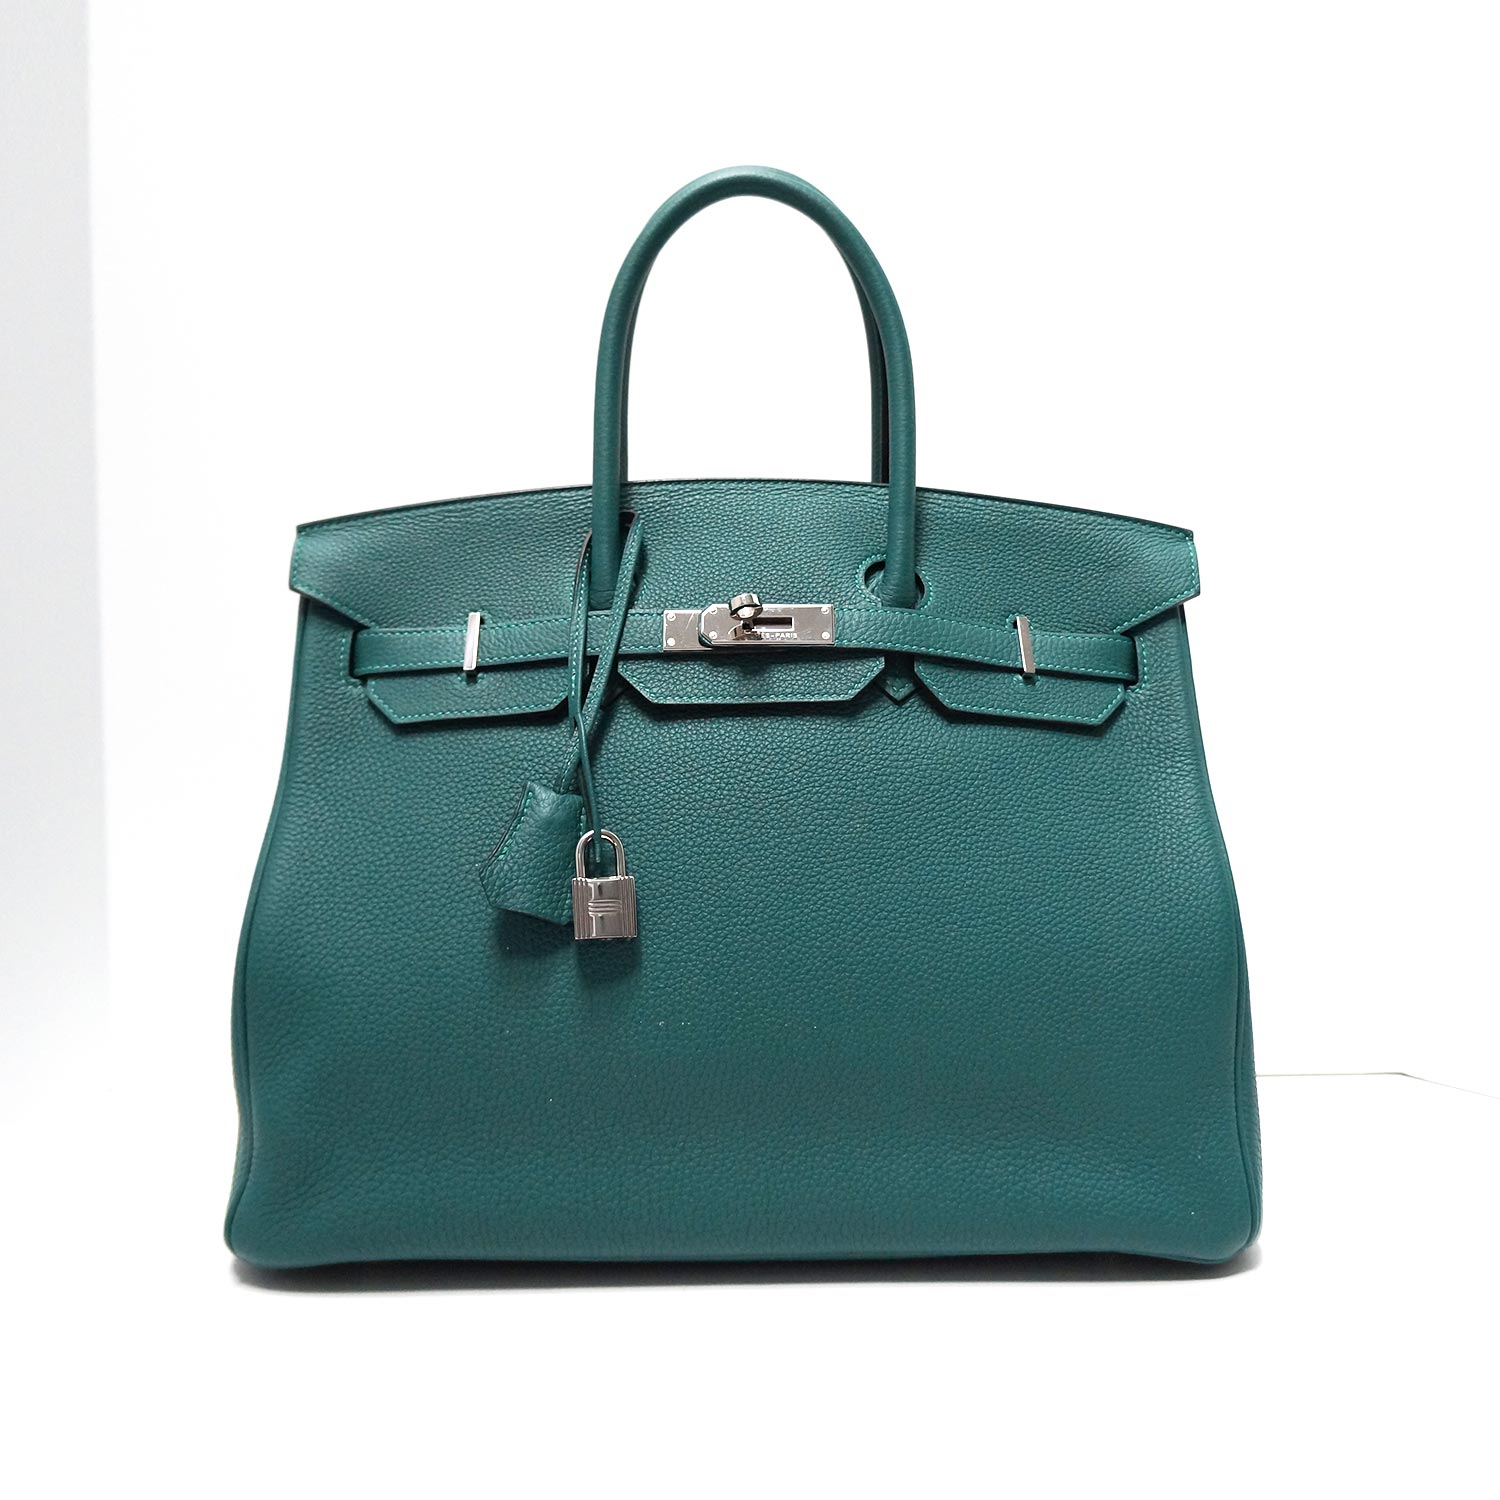 c36de1e4770cc Hermes Togo 35cm Birkin Bag Malachite Leather with Palladium Hardware